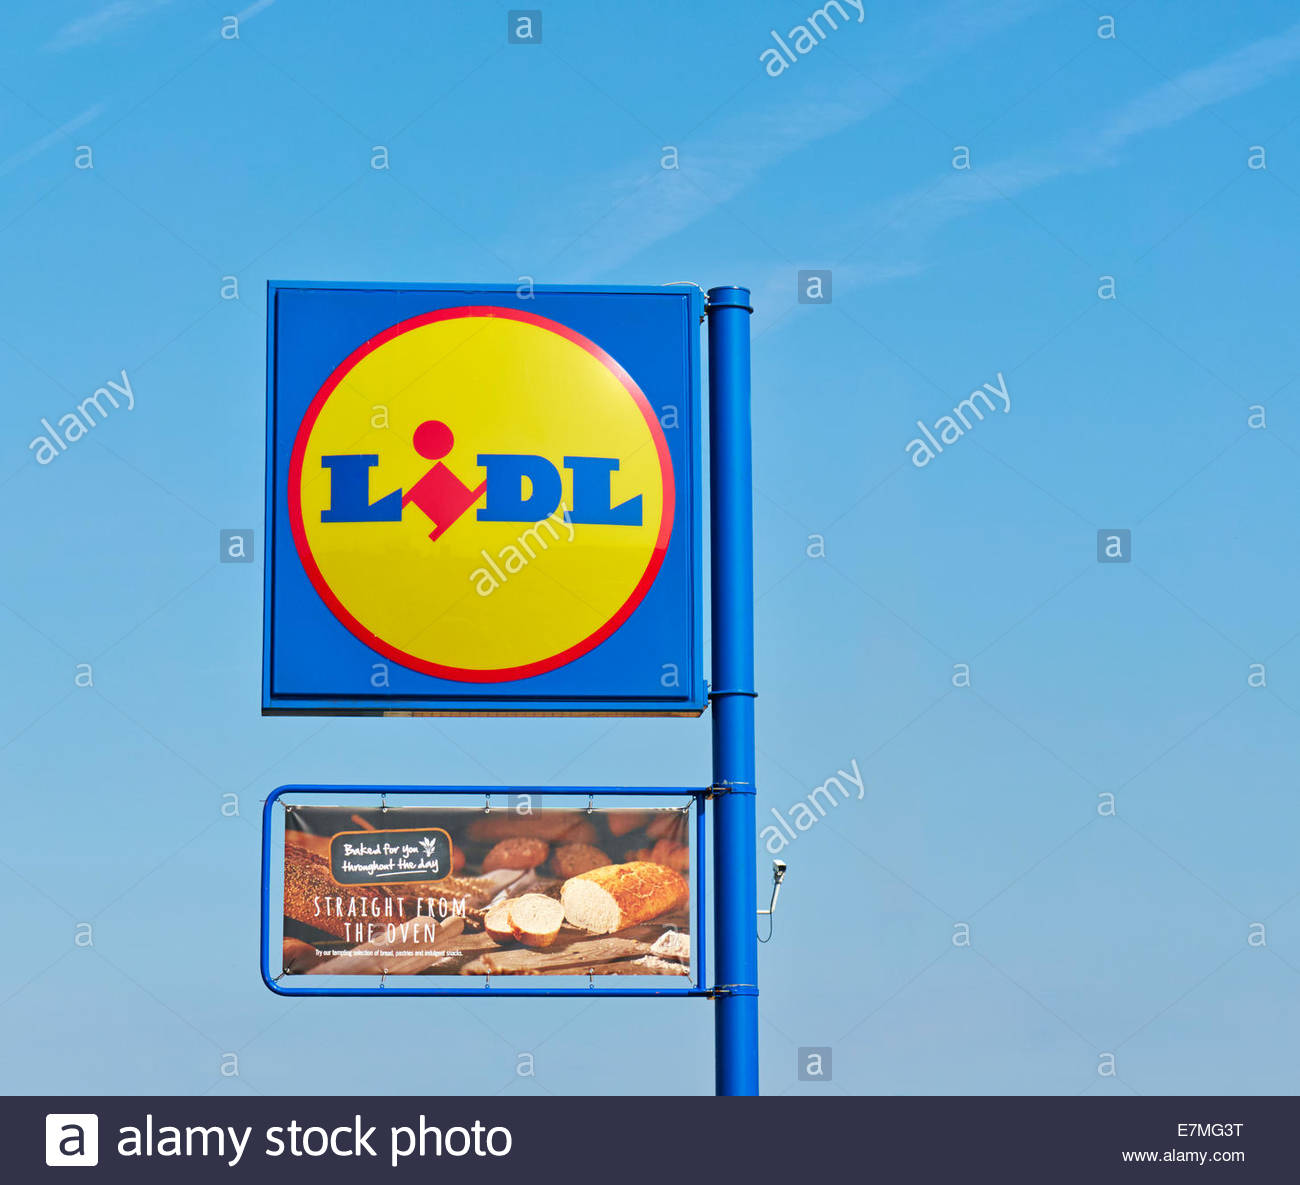 blue yellow logo sign of lidl supermarket against blue sky - Stock Image